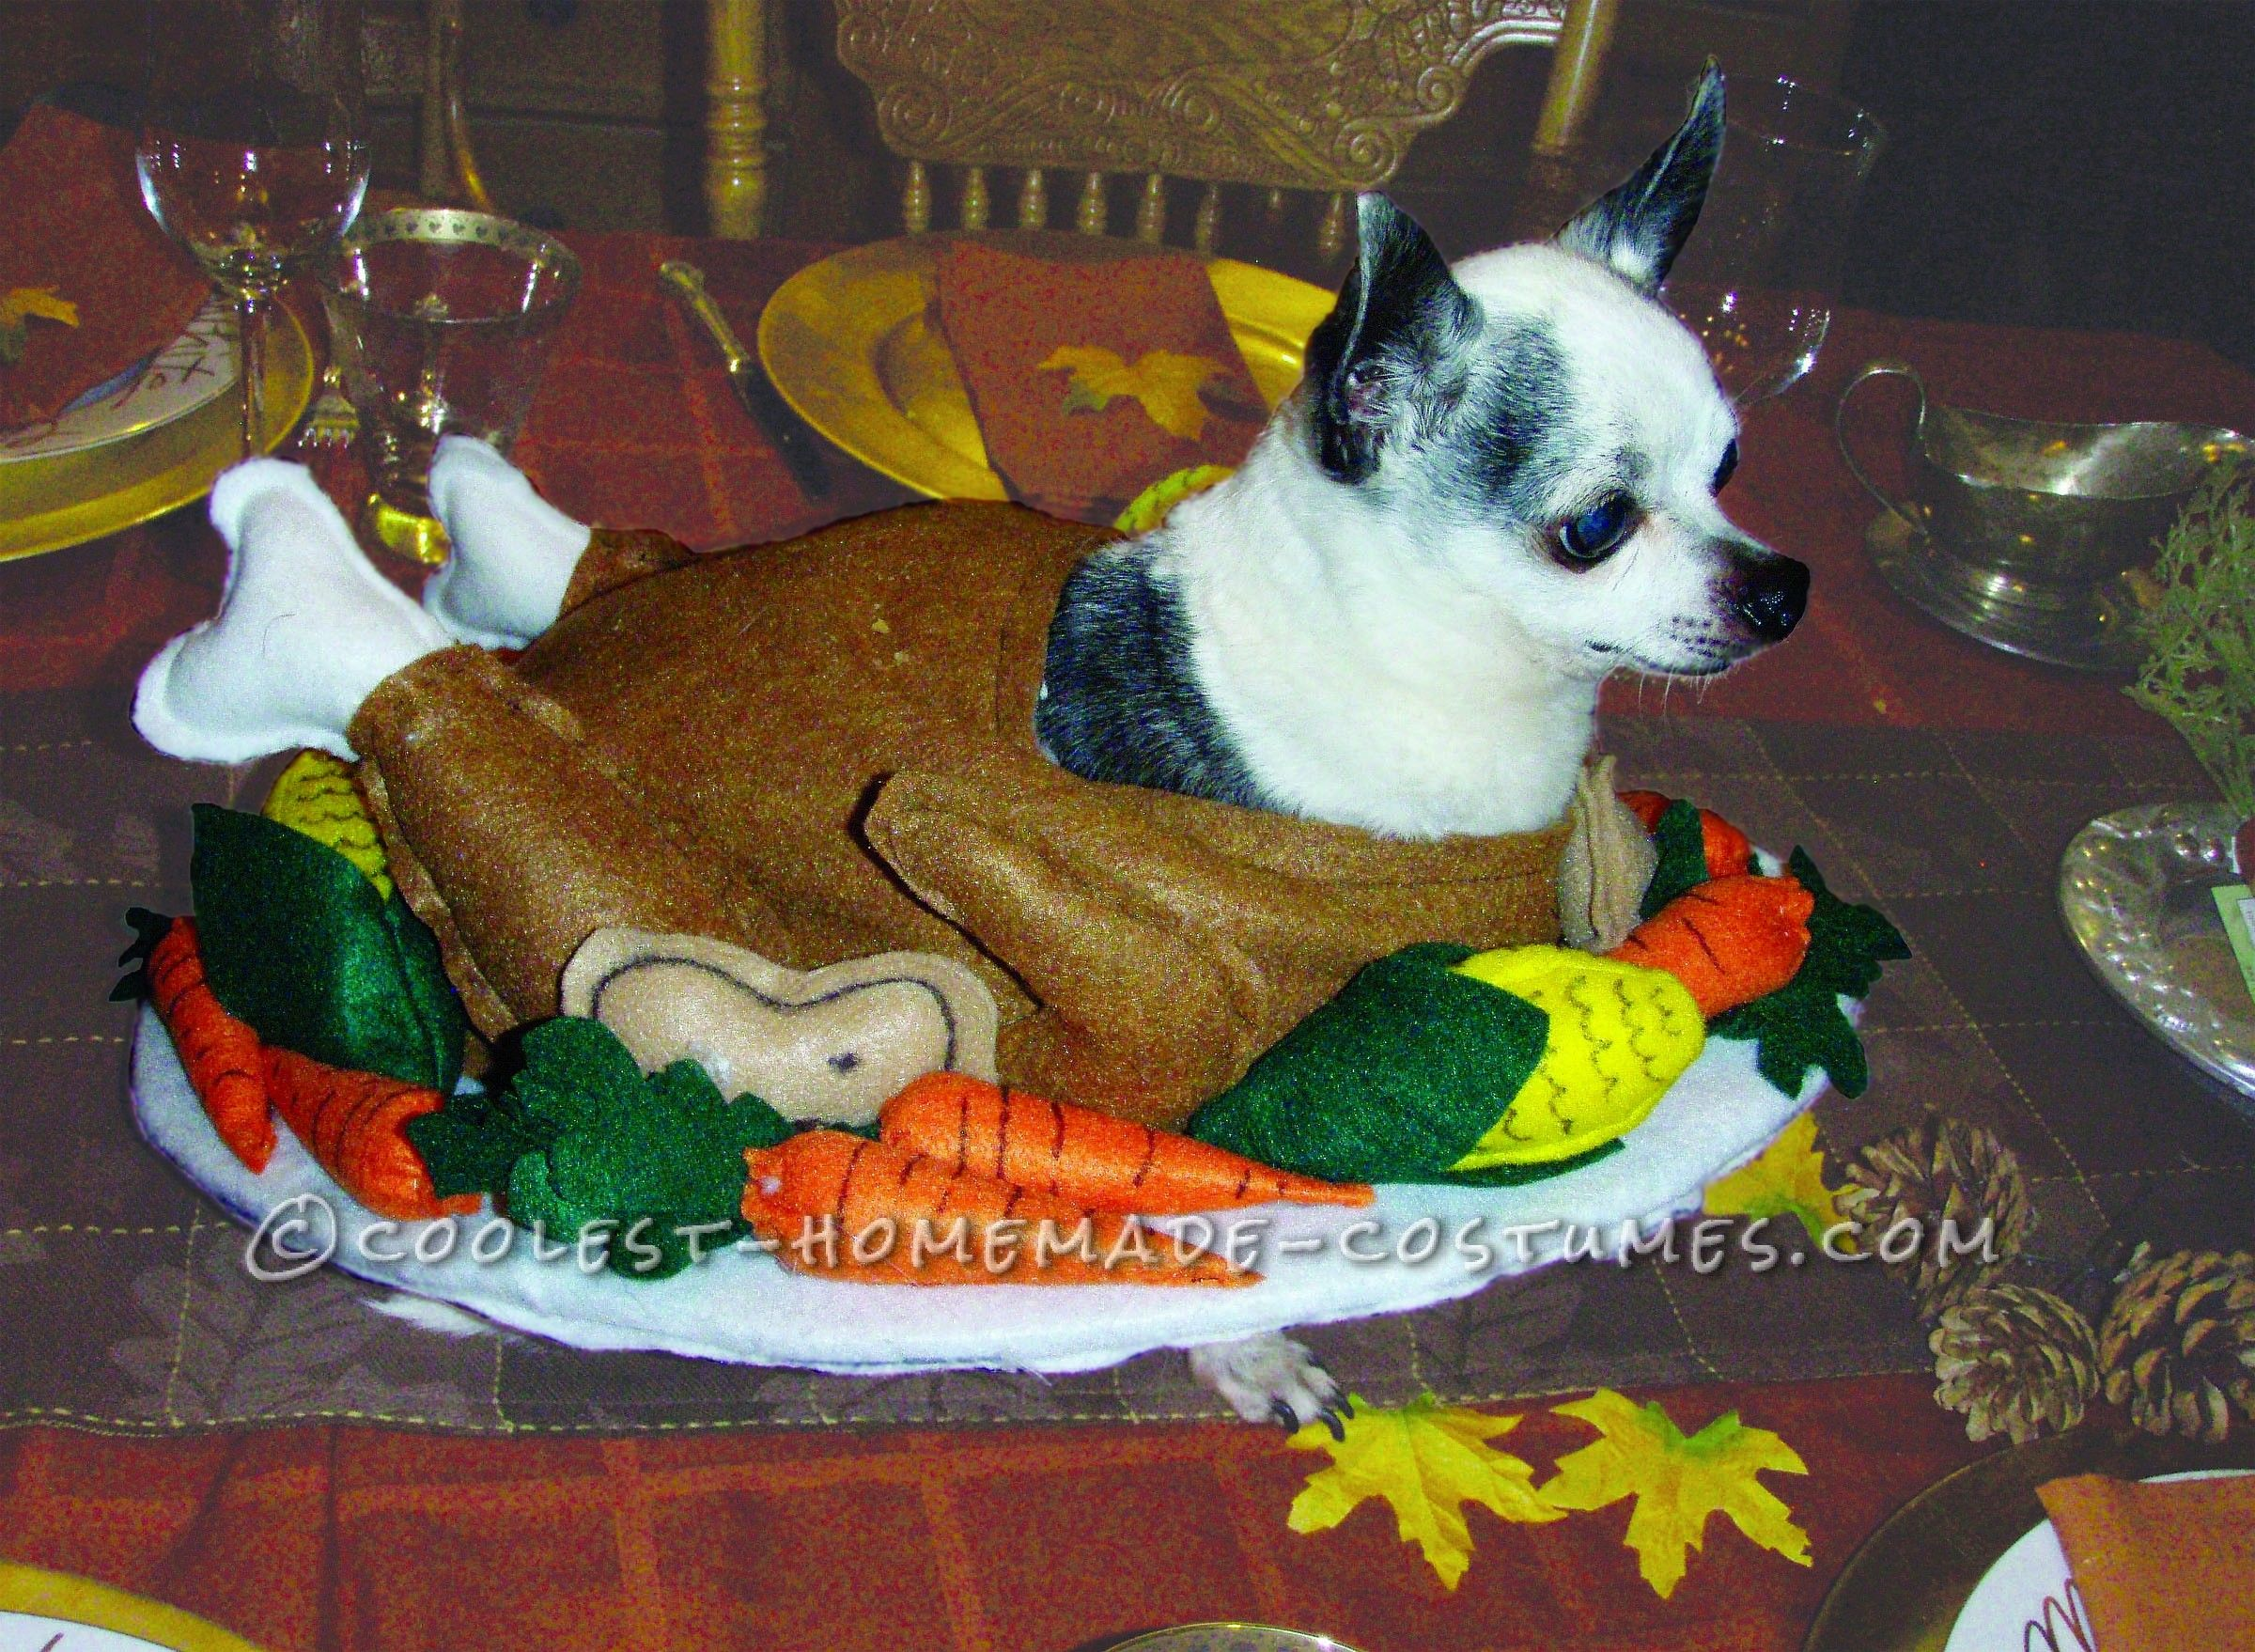 Funny Homemade Dog Costume Gobble Til